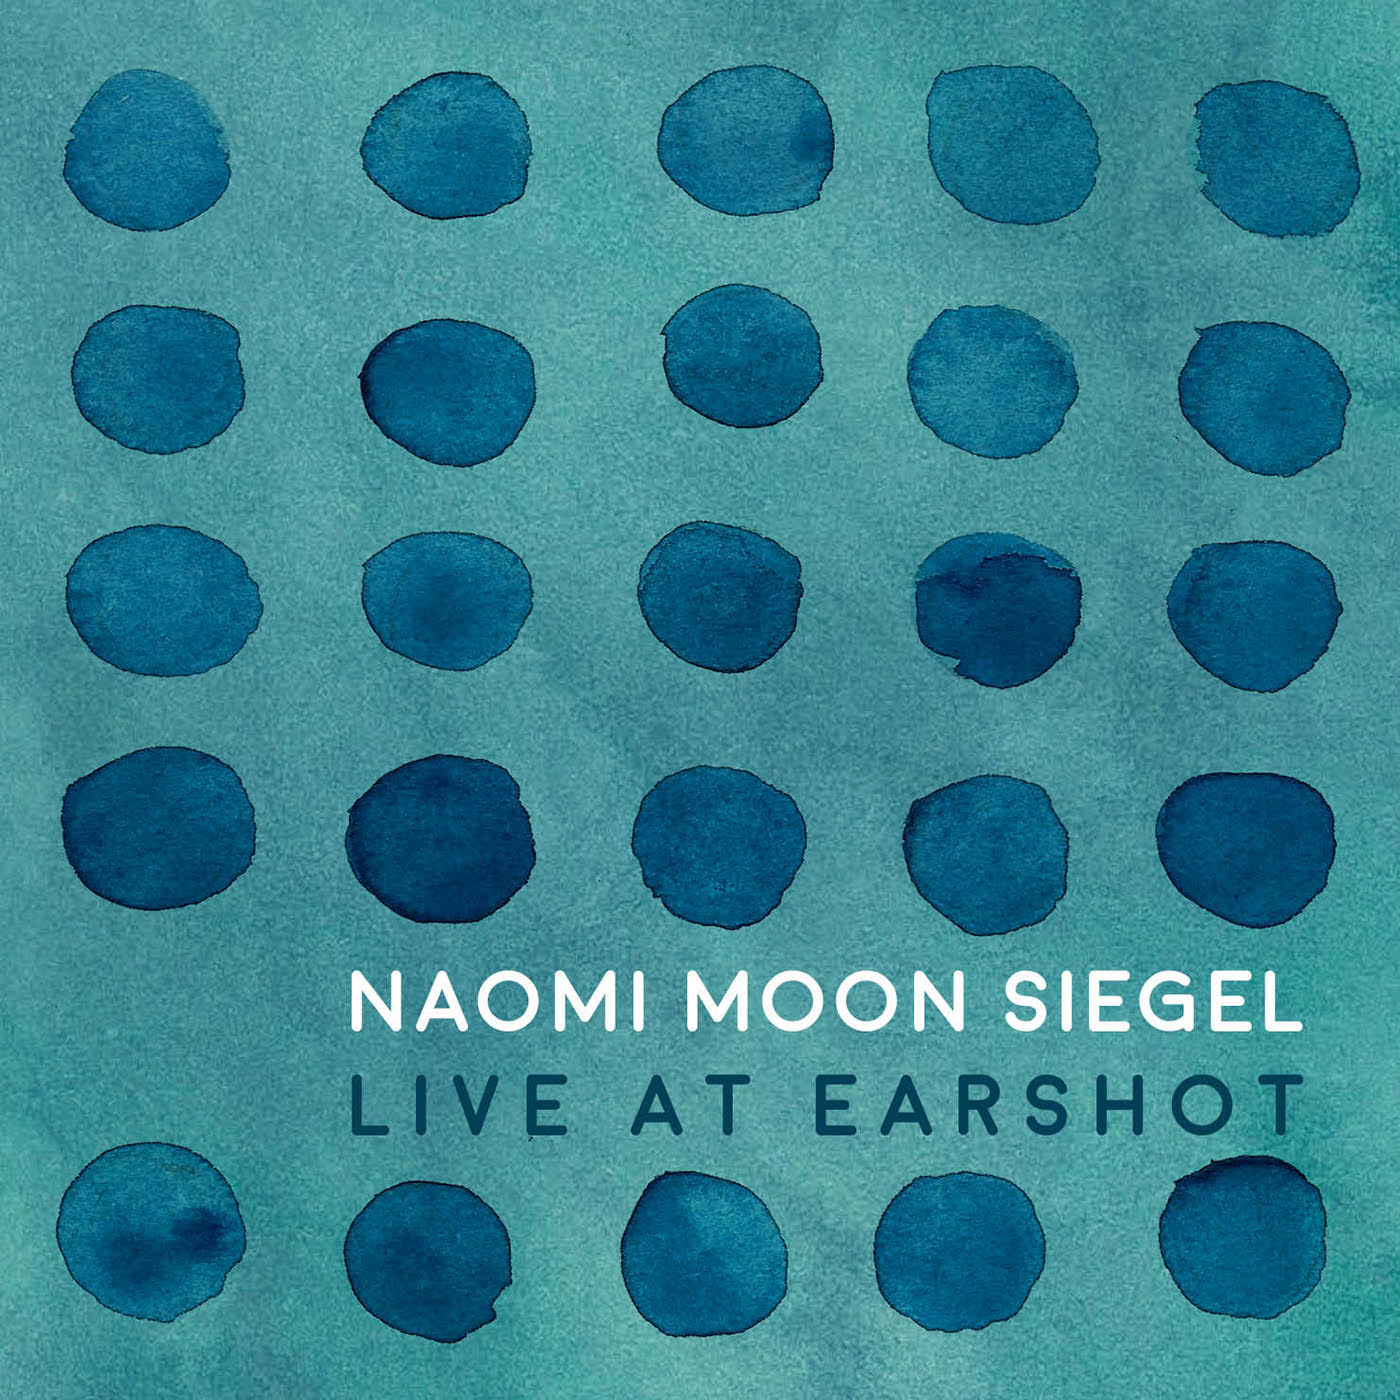 Naomi Moon Siegel, Live at Earshot - Naomi is a prolific local musician who is an advocate for intentional listening and incorporating improvisation. Her jazz is fluid and experimental, blooming into cunning arrangements.